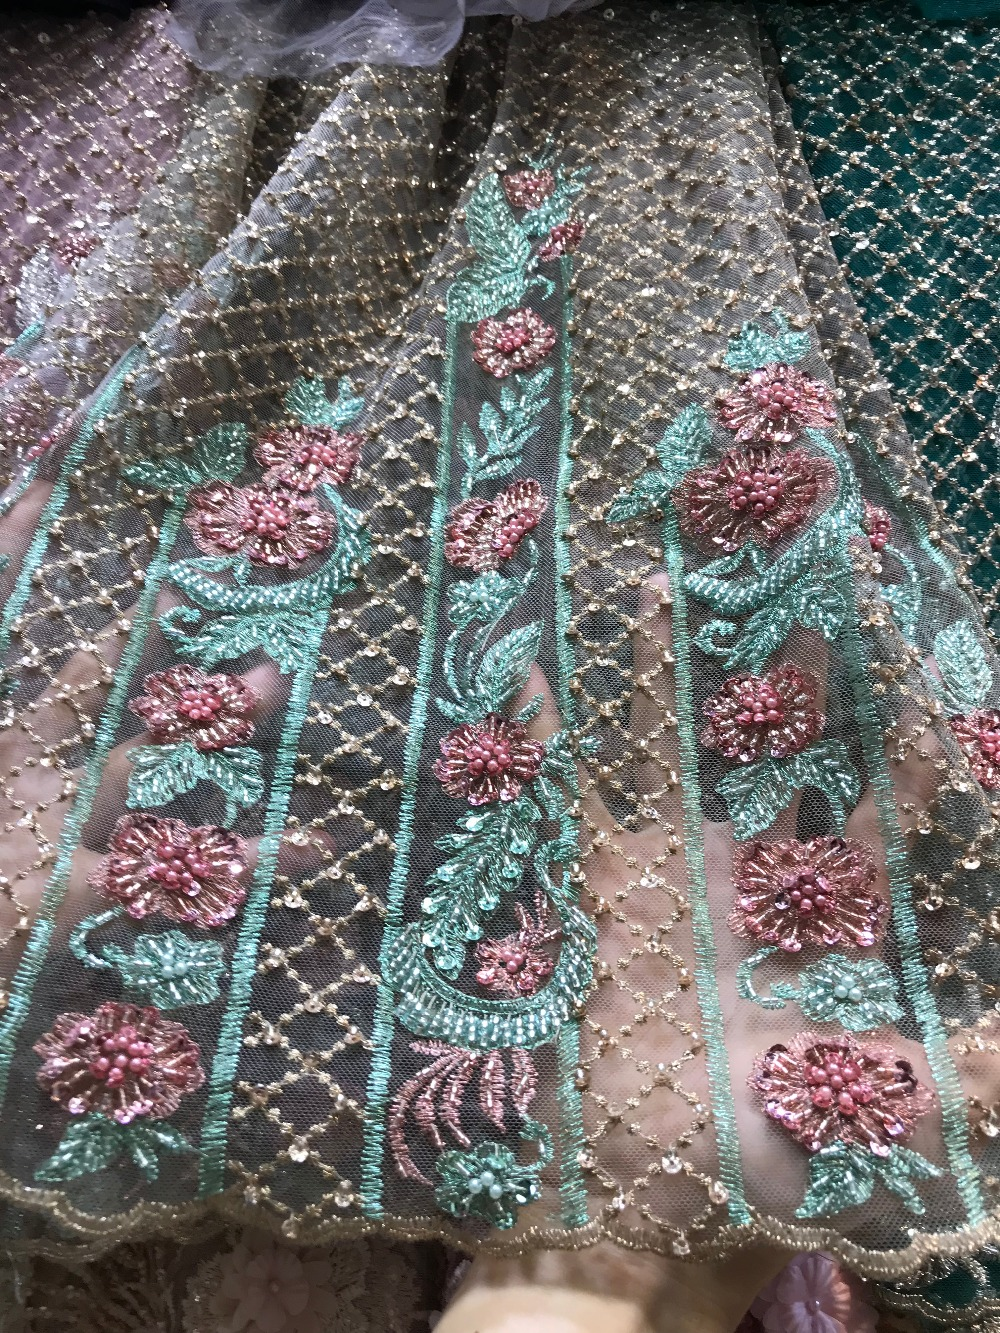 red green beaded french lace stones party wedding bridal dress lace fabric 5 yards voile tulle lace fabricred green beaded french lace stones party wedding bridal dress lace fabric 5 yards voile tulle lace fabric